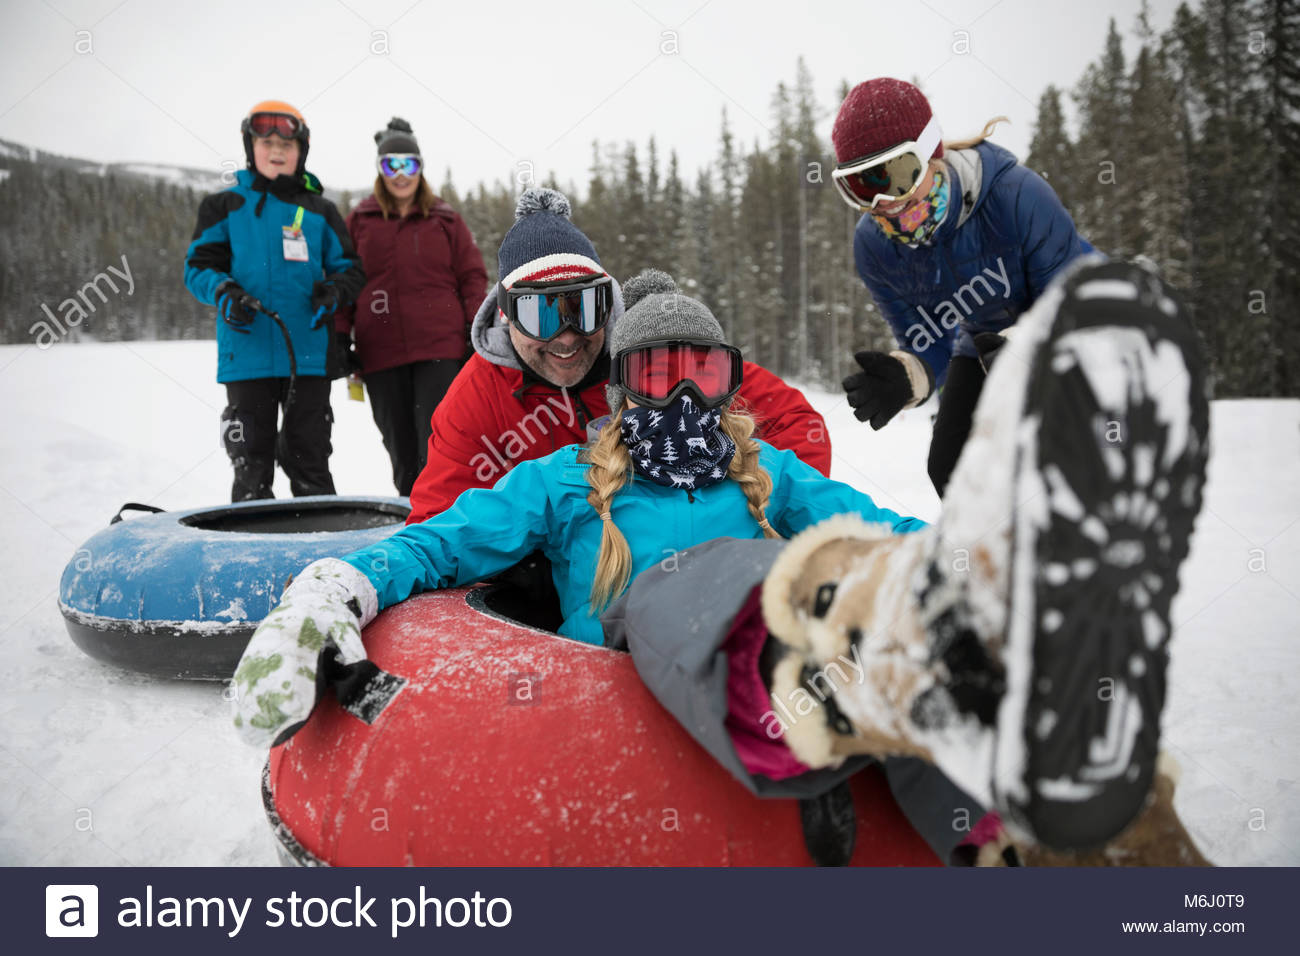 Portrait playful family inner tubing in snow at tube park - Stock Image